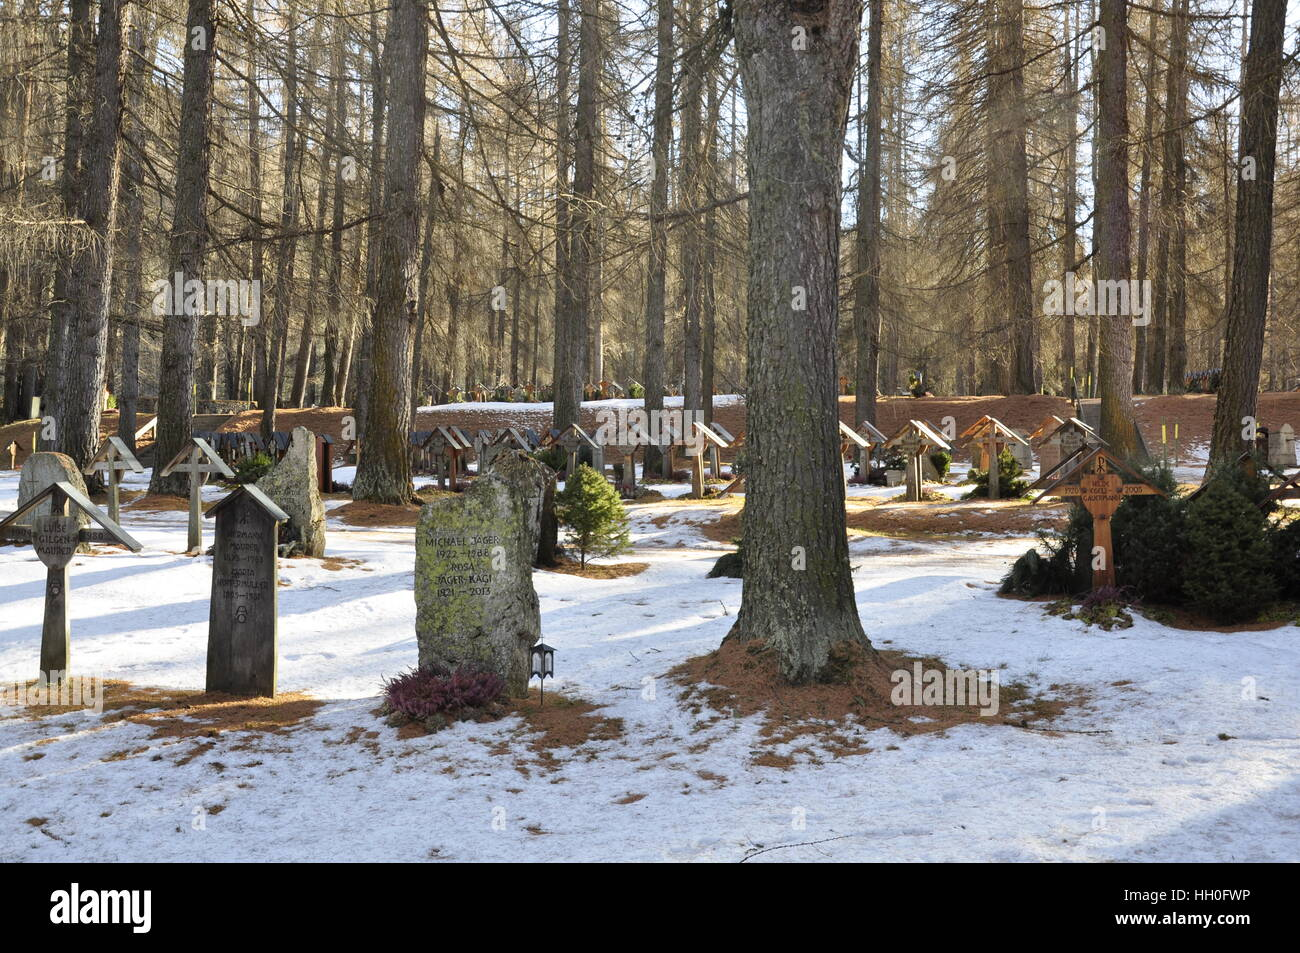 Jew cemetery - Stock Image